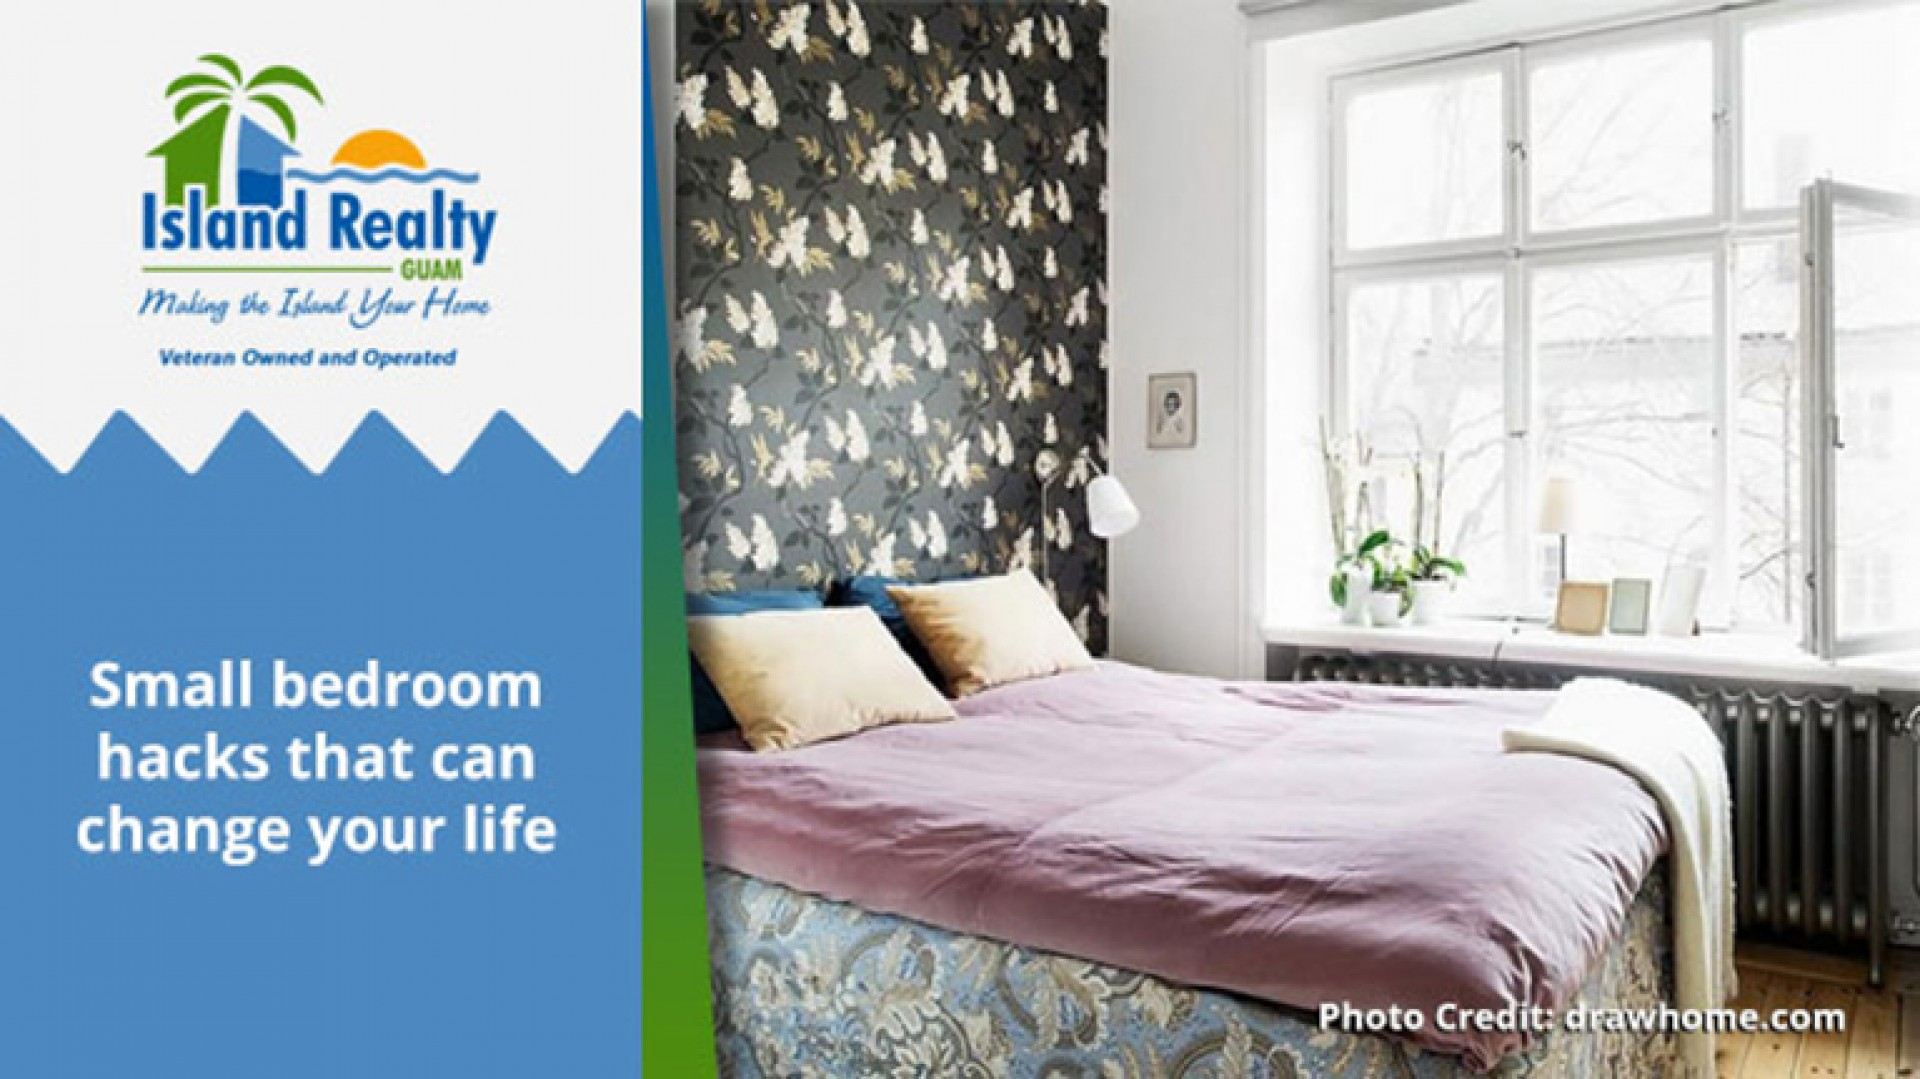 Small bedroom hacks that can change your life | Guam Real ...